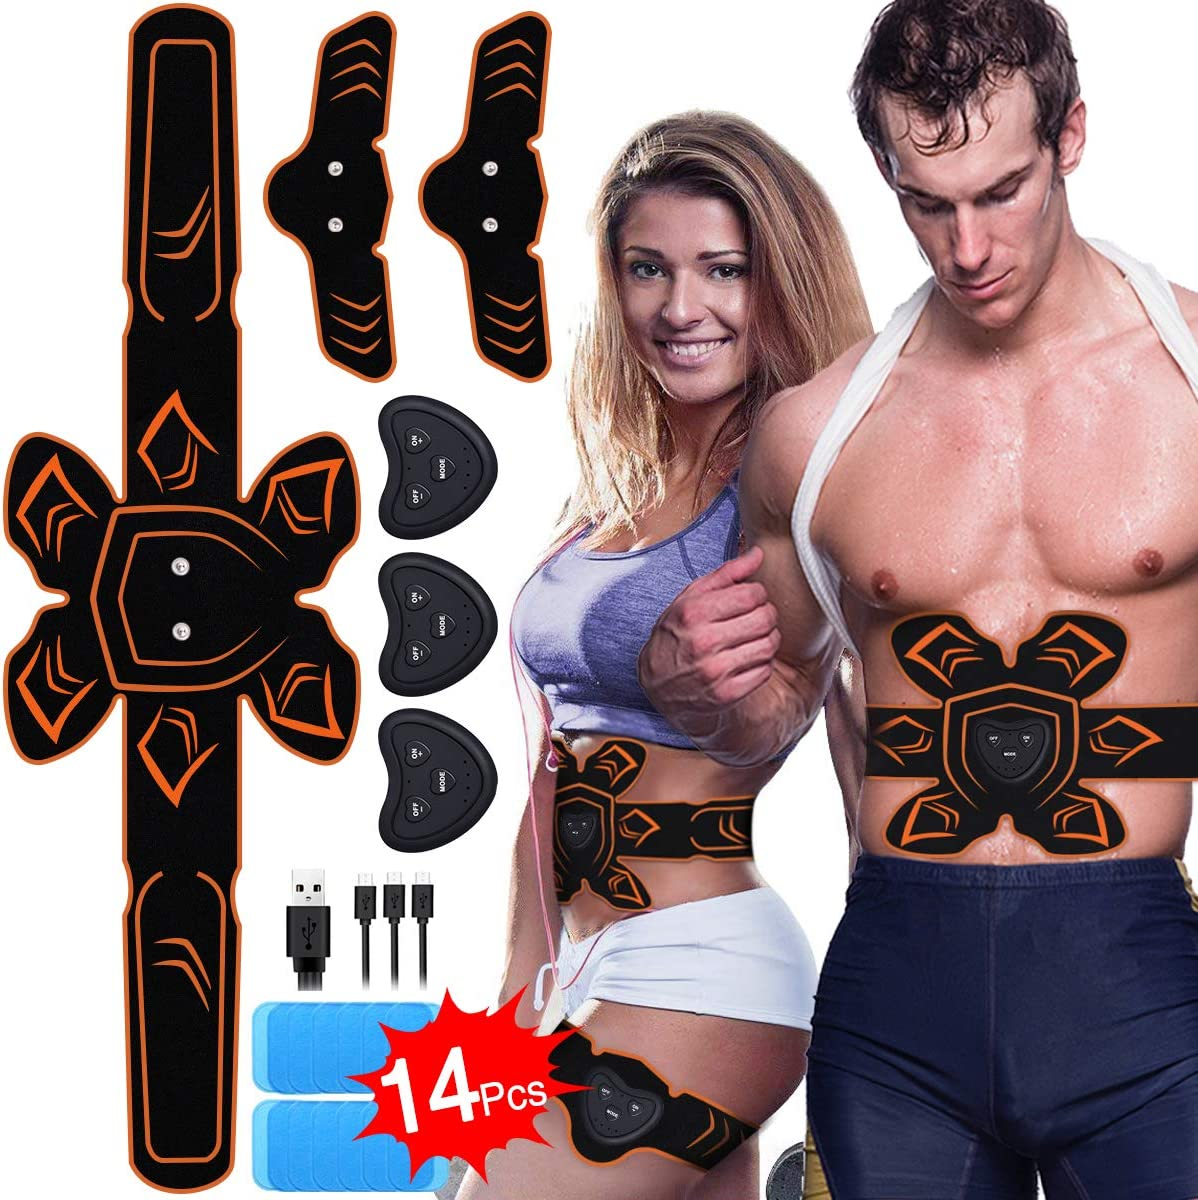 PiAEK ABS Stimulator Muscle Toner Rechargeable Abdominal Toning Belt, EMS Abdomen Muscle Trainer Fitness with 6 Modes 10 Levels for Men Women Abdomen Arm Le